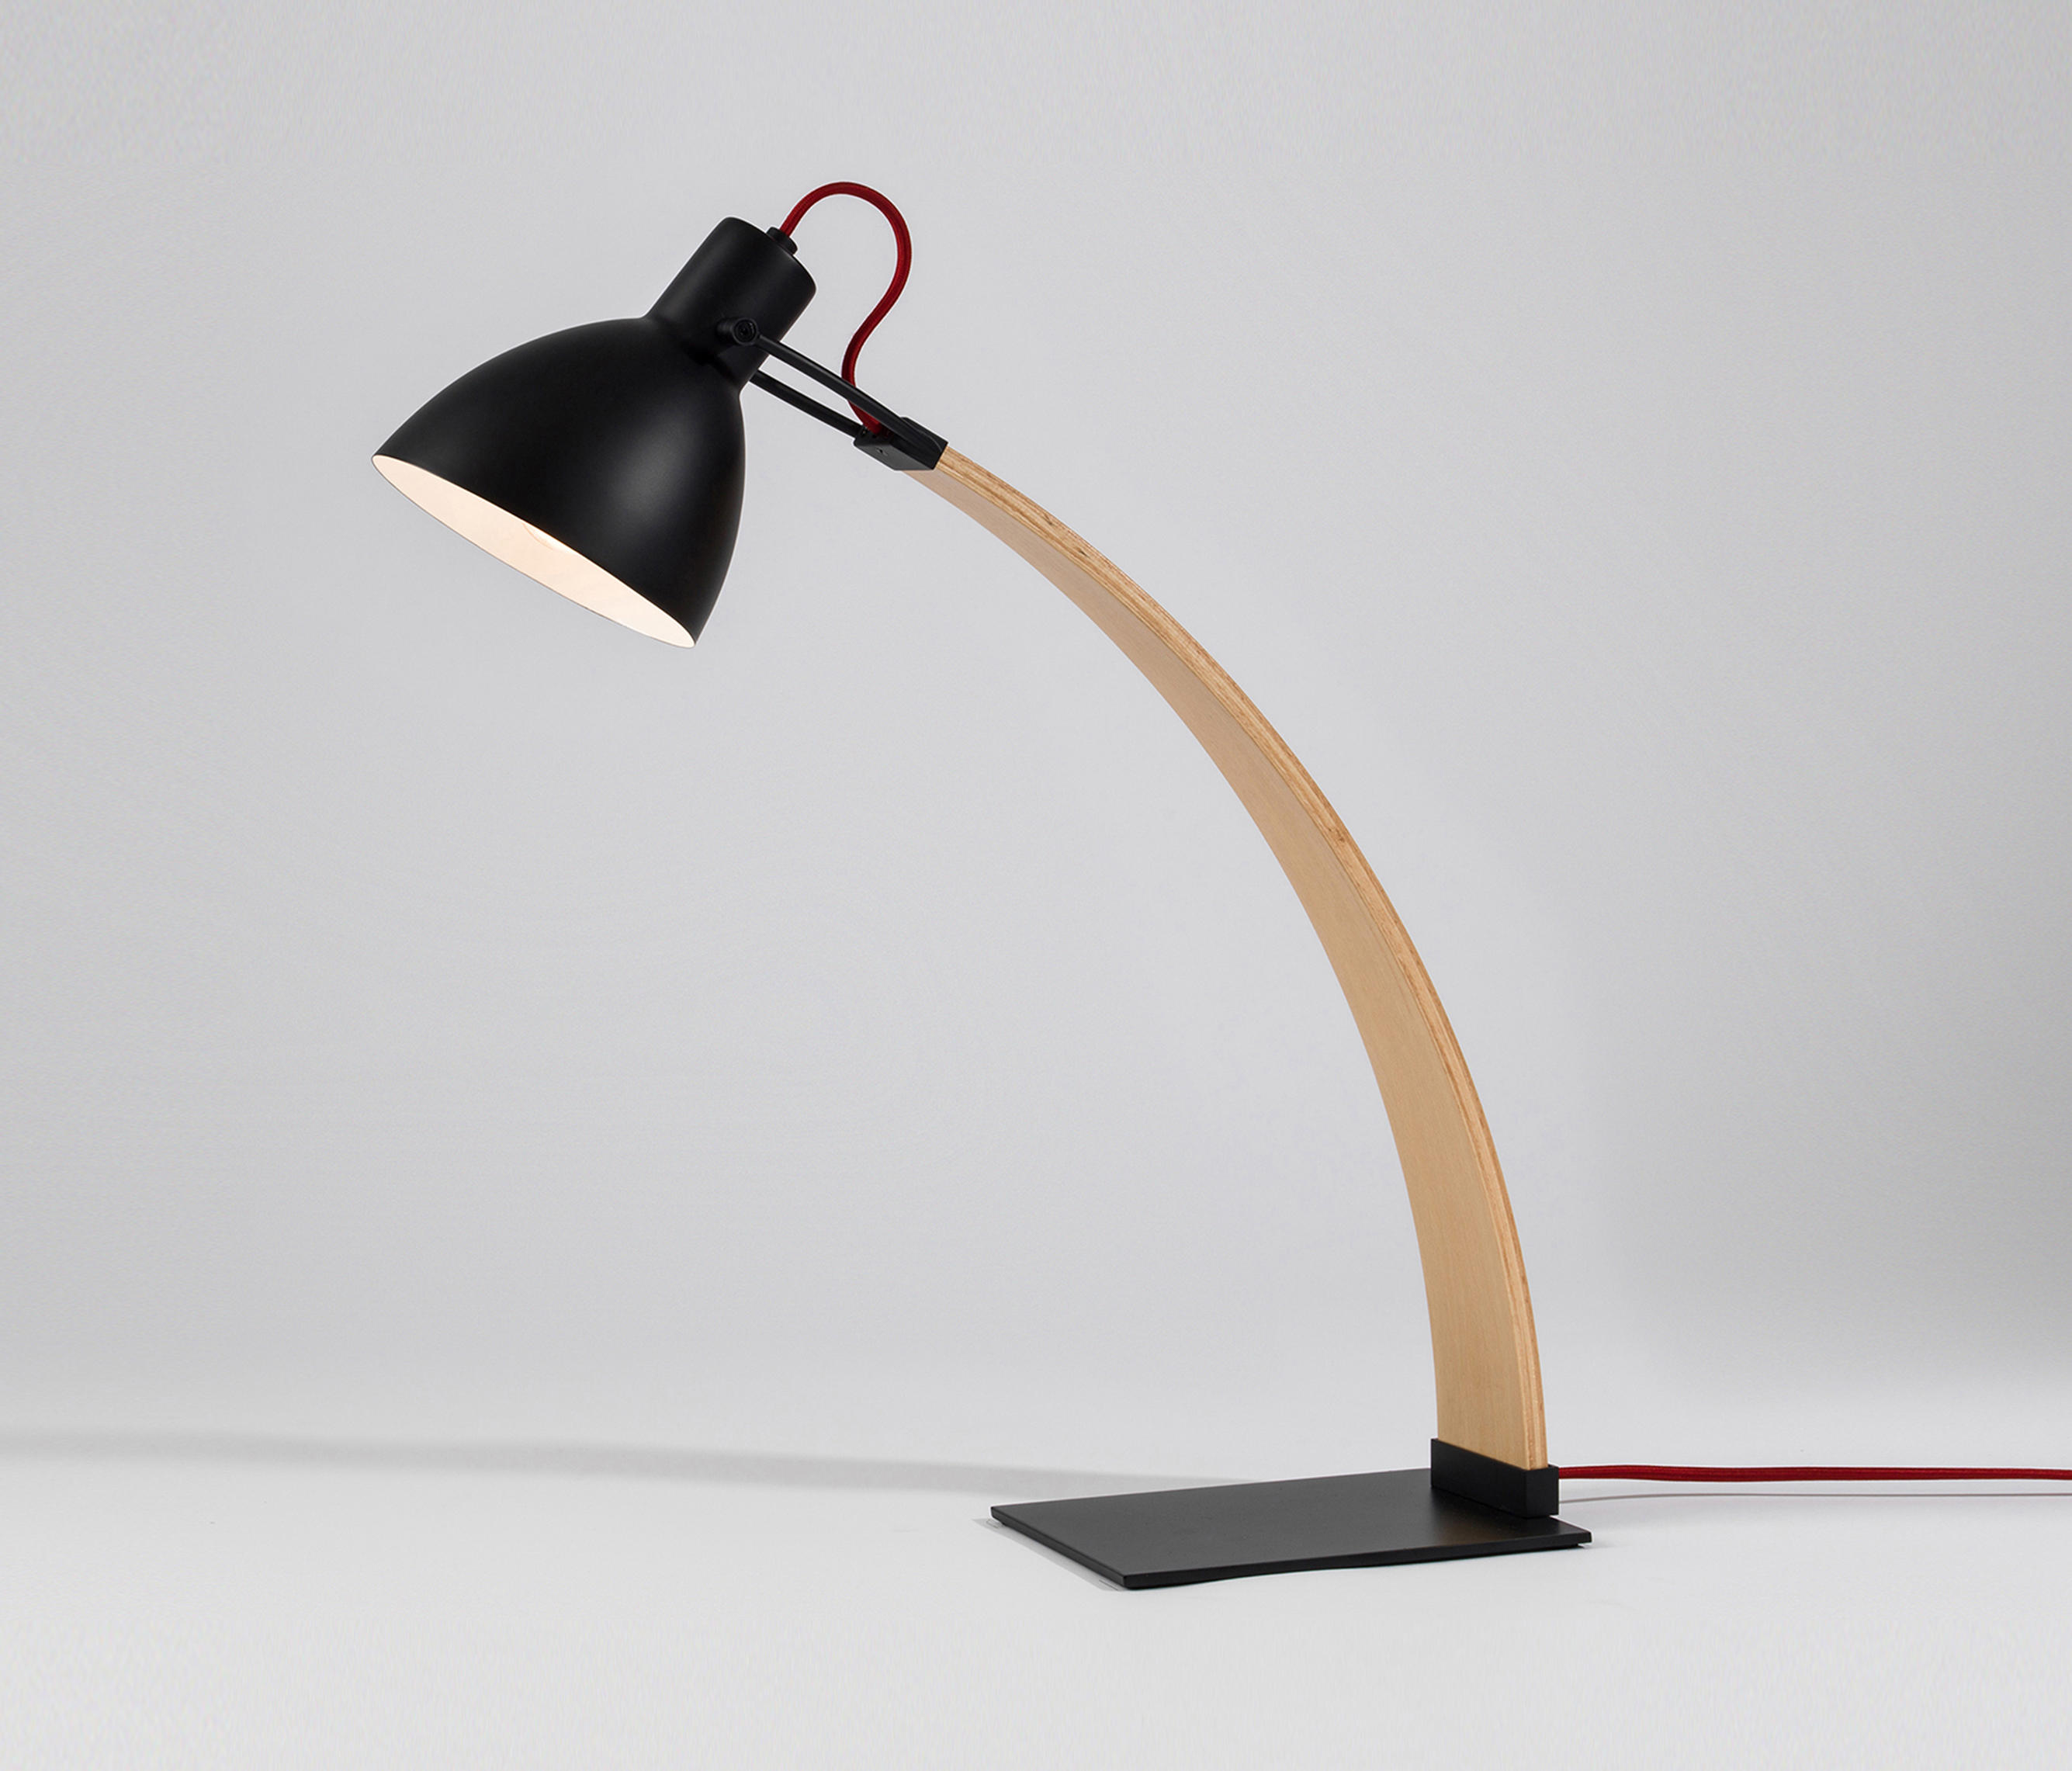 laito wood desk lamp general lighting from seeddesign metal contemporary table lamps